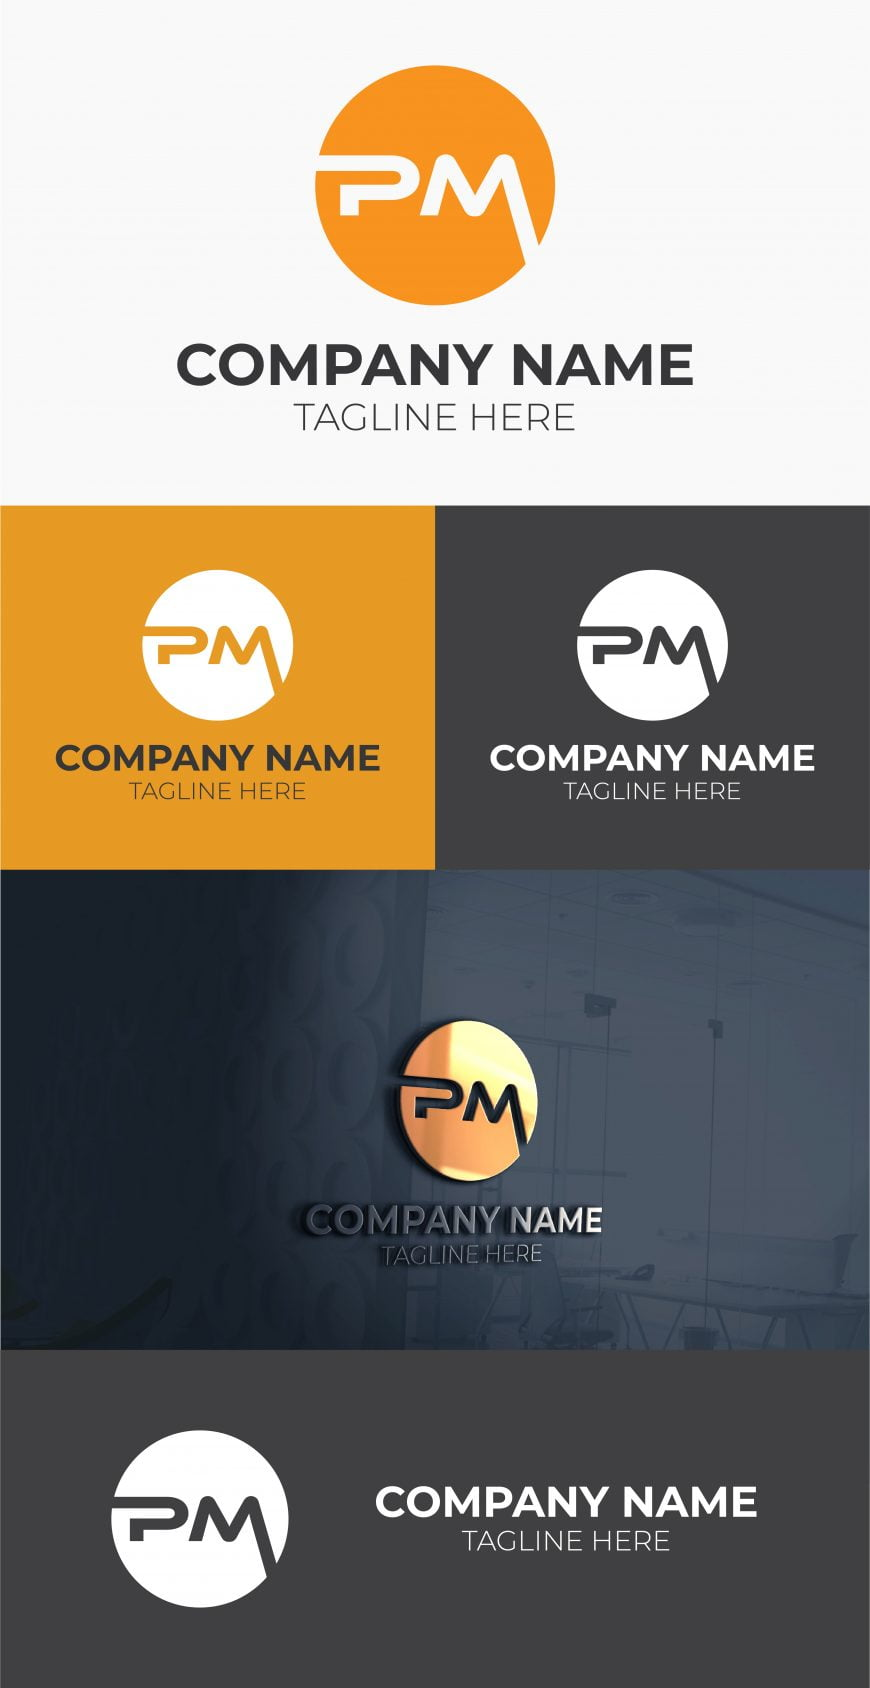 PM-LOGO-DESIGN-FREE-TEMPLATE-scaled